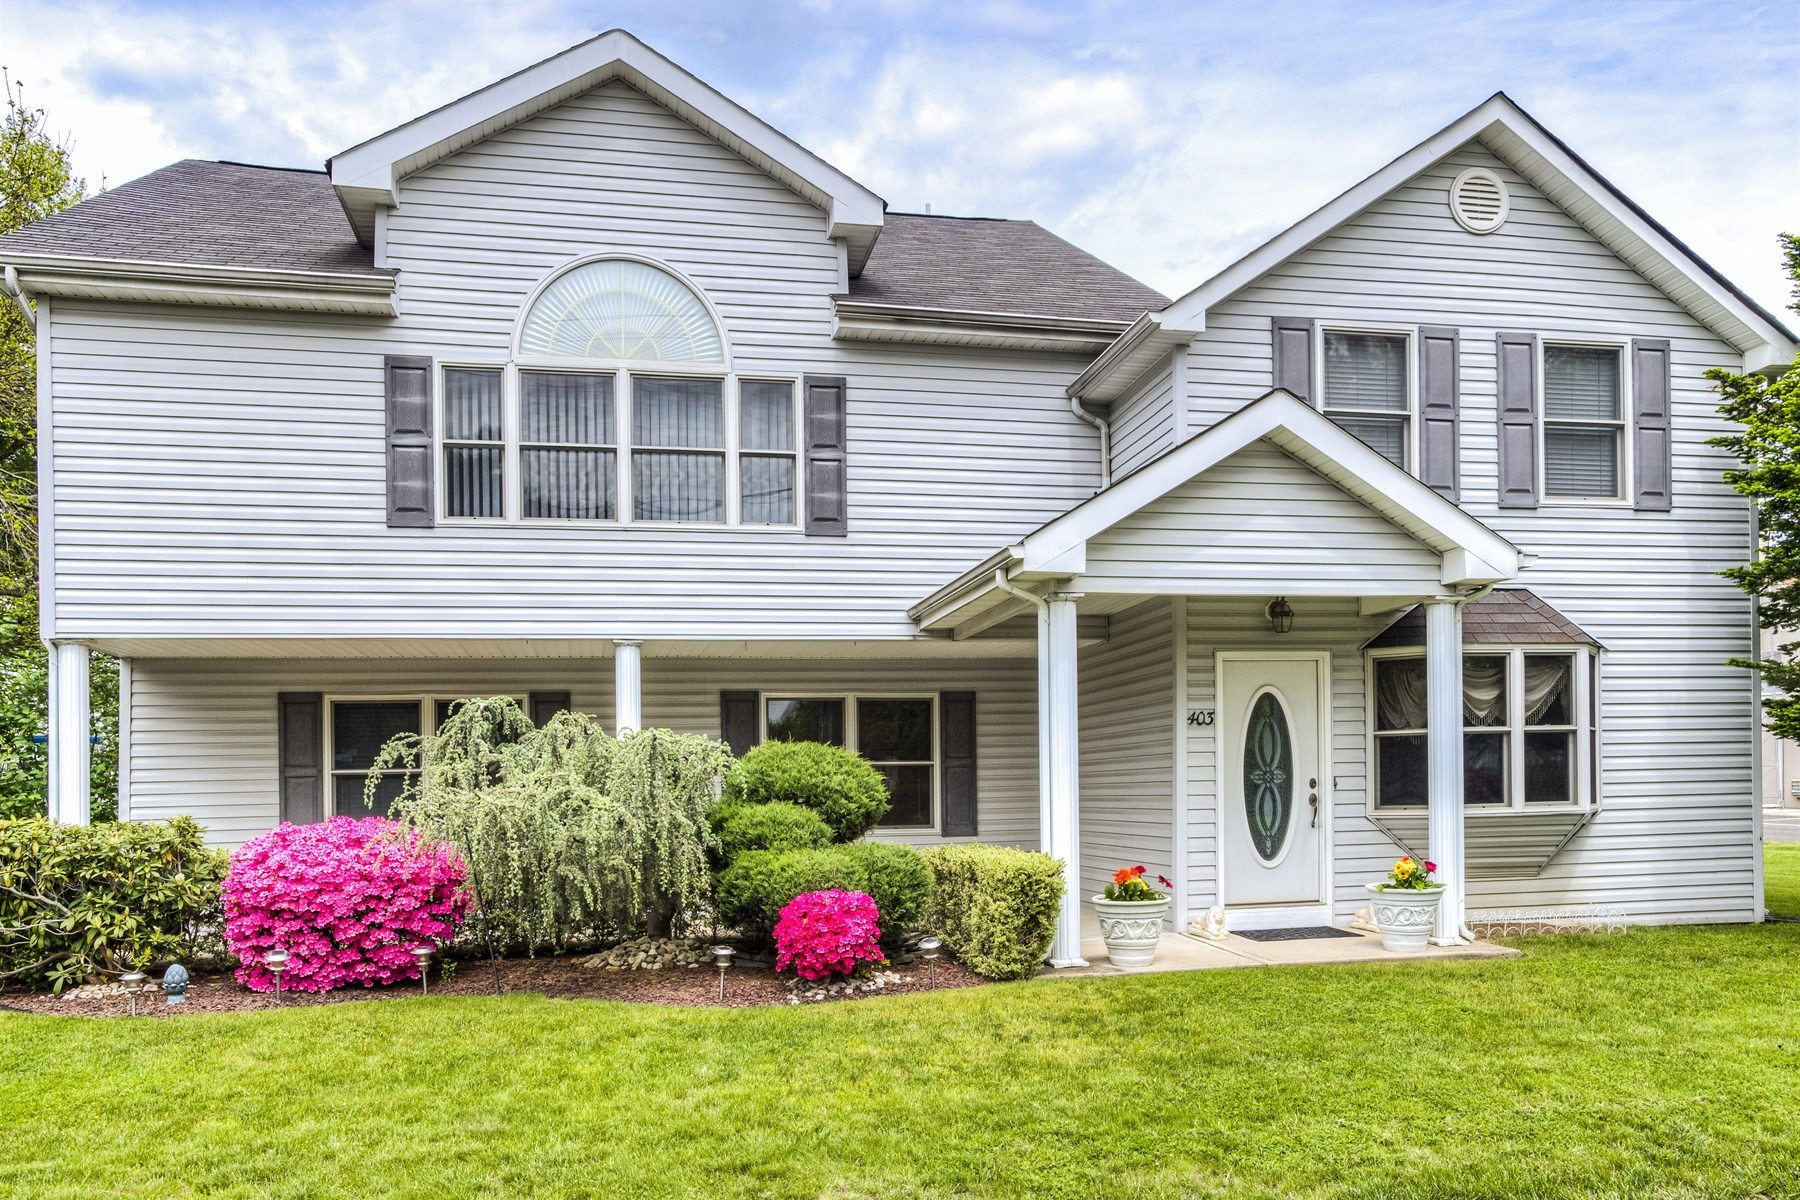 Single Family Home for Sale at Where your home reflects your style 403 E. Freehold Road Freehold, New Jersey 07728 United States